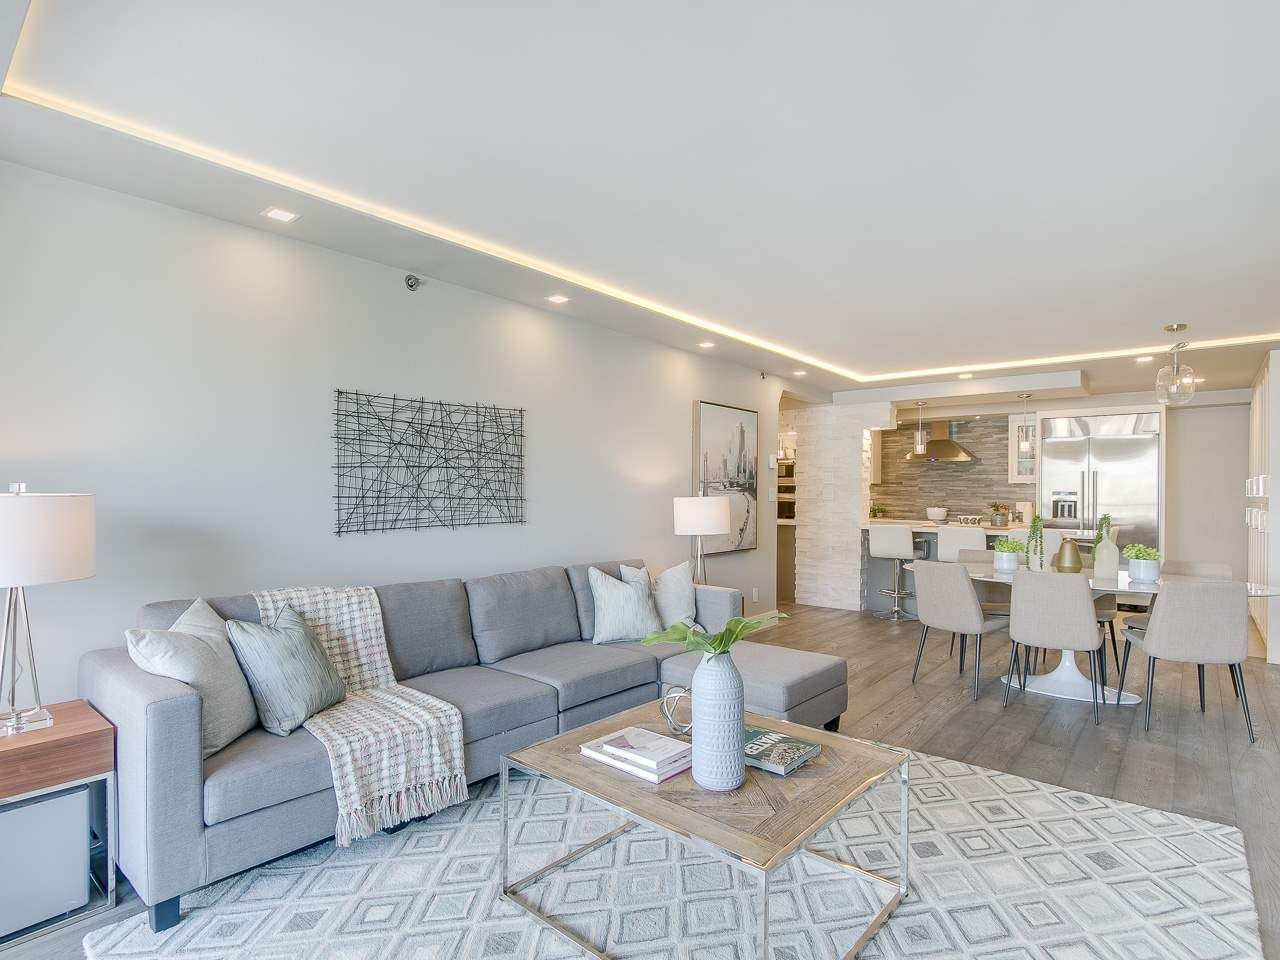 """Main Photo: 507 518 W 14TH Avenue in Vancouver: Fairview VW Condo for sale in """"North Gate - PACIFICA"""" (Vancouver West)  : MLS®# R2253071"""